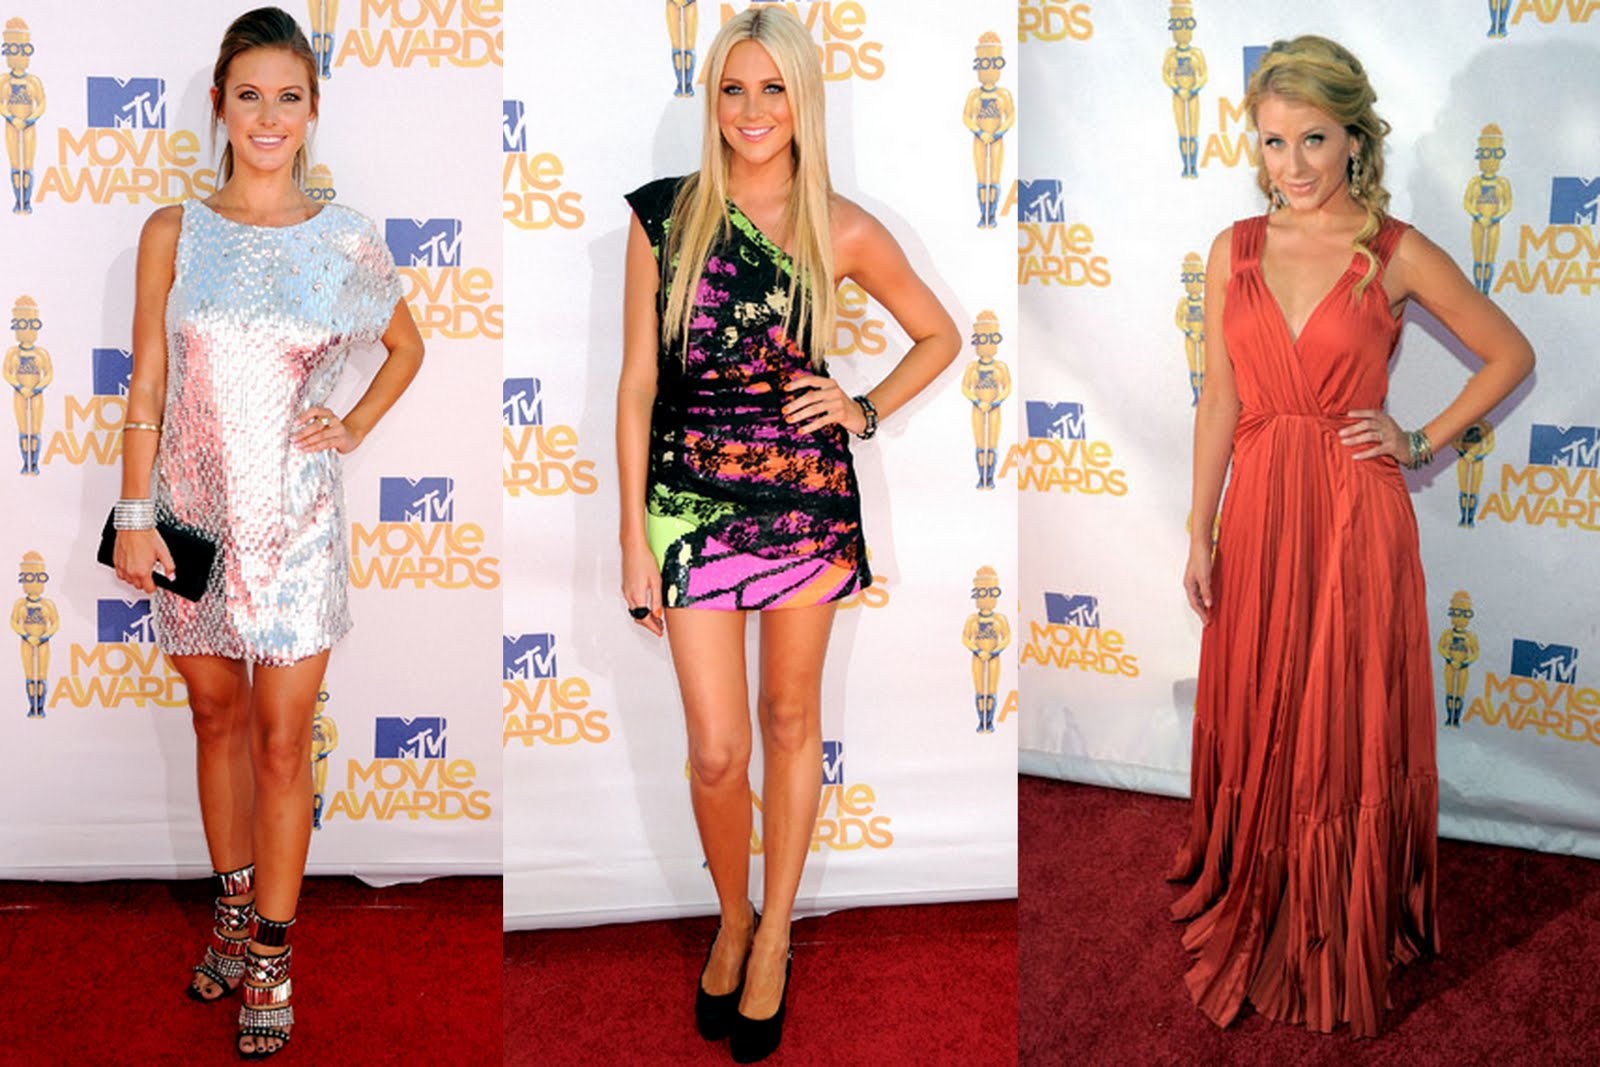 http://4.bp.blogspot.com/_wV5hth6EEEM/TBoDwrulj-I/AAAAAAAADFw/AxxR77uAGLo/s1600/mtv+movie+awards+2010.jpg